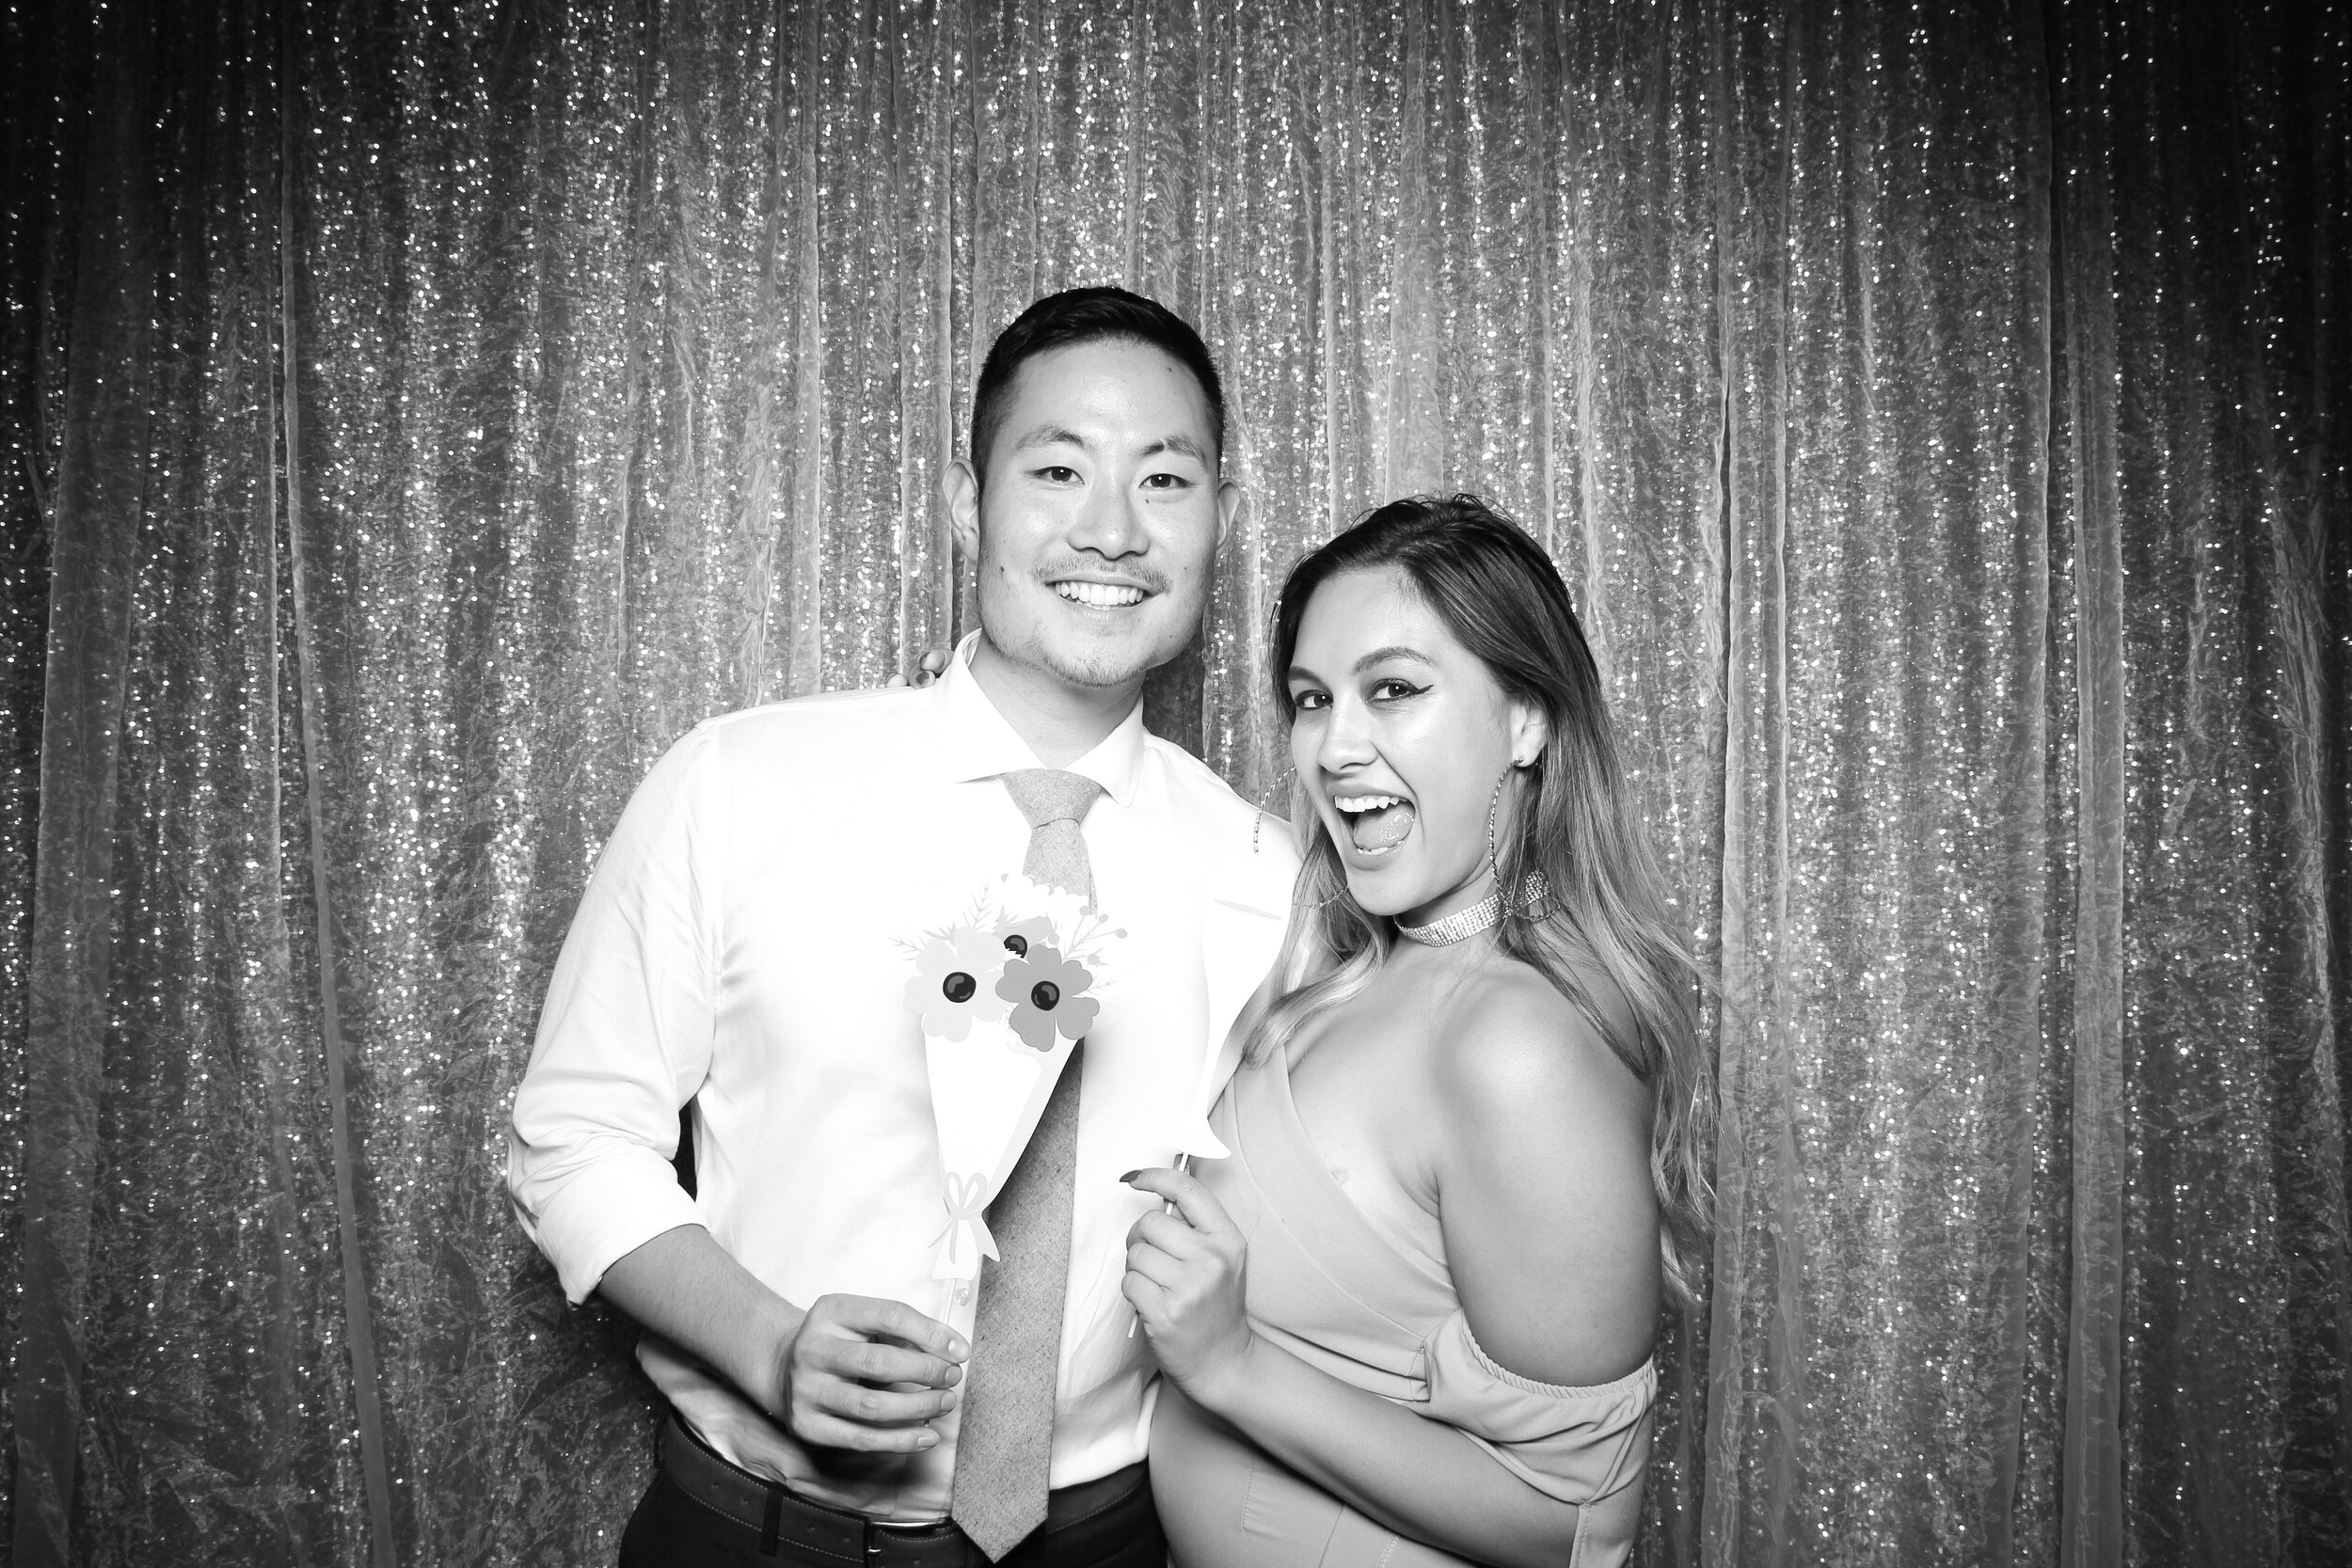 Ravisloe_Country_Club_Wedding_Photo_Booth_04.jpg